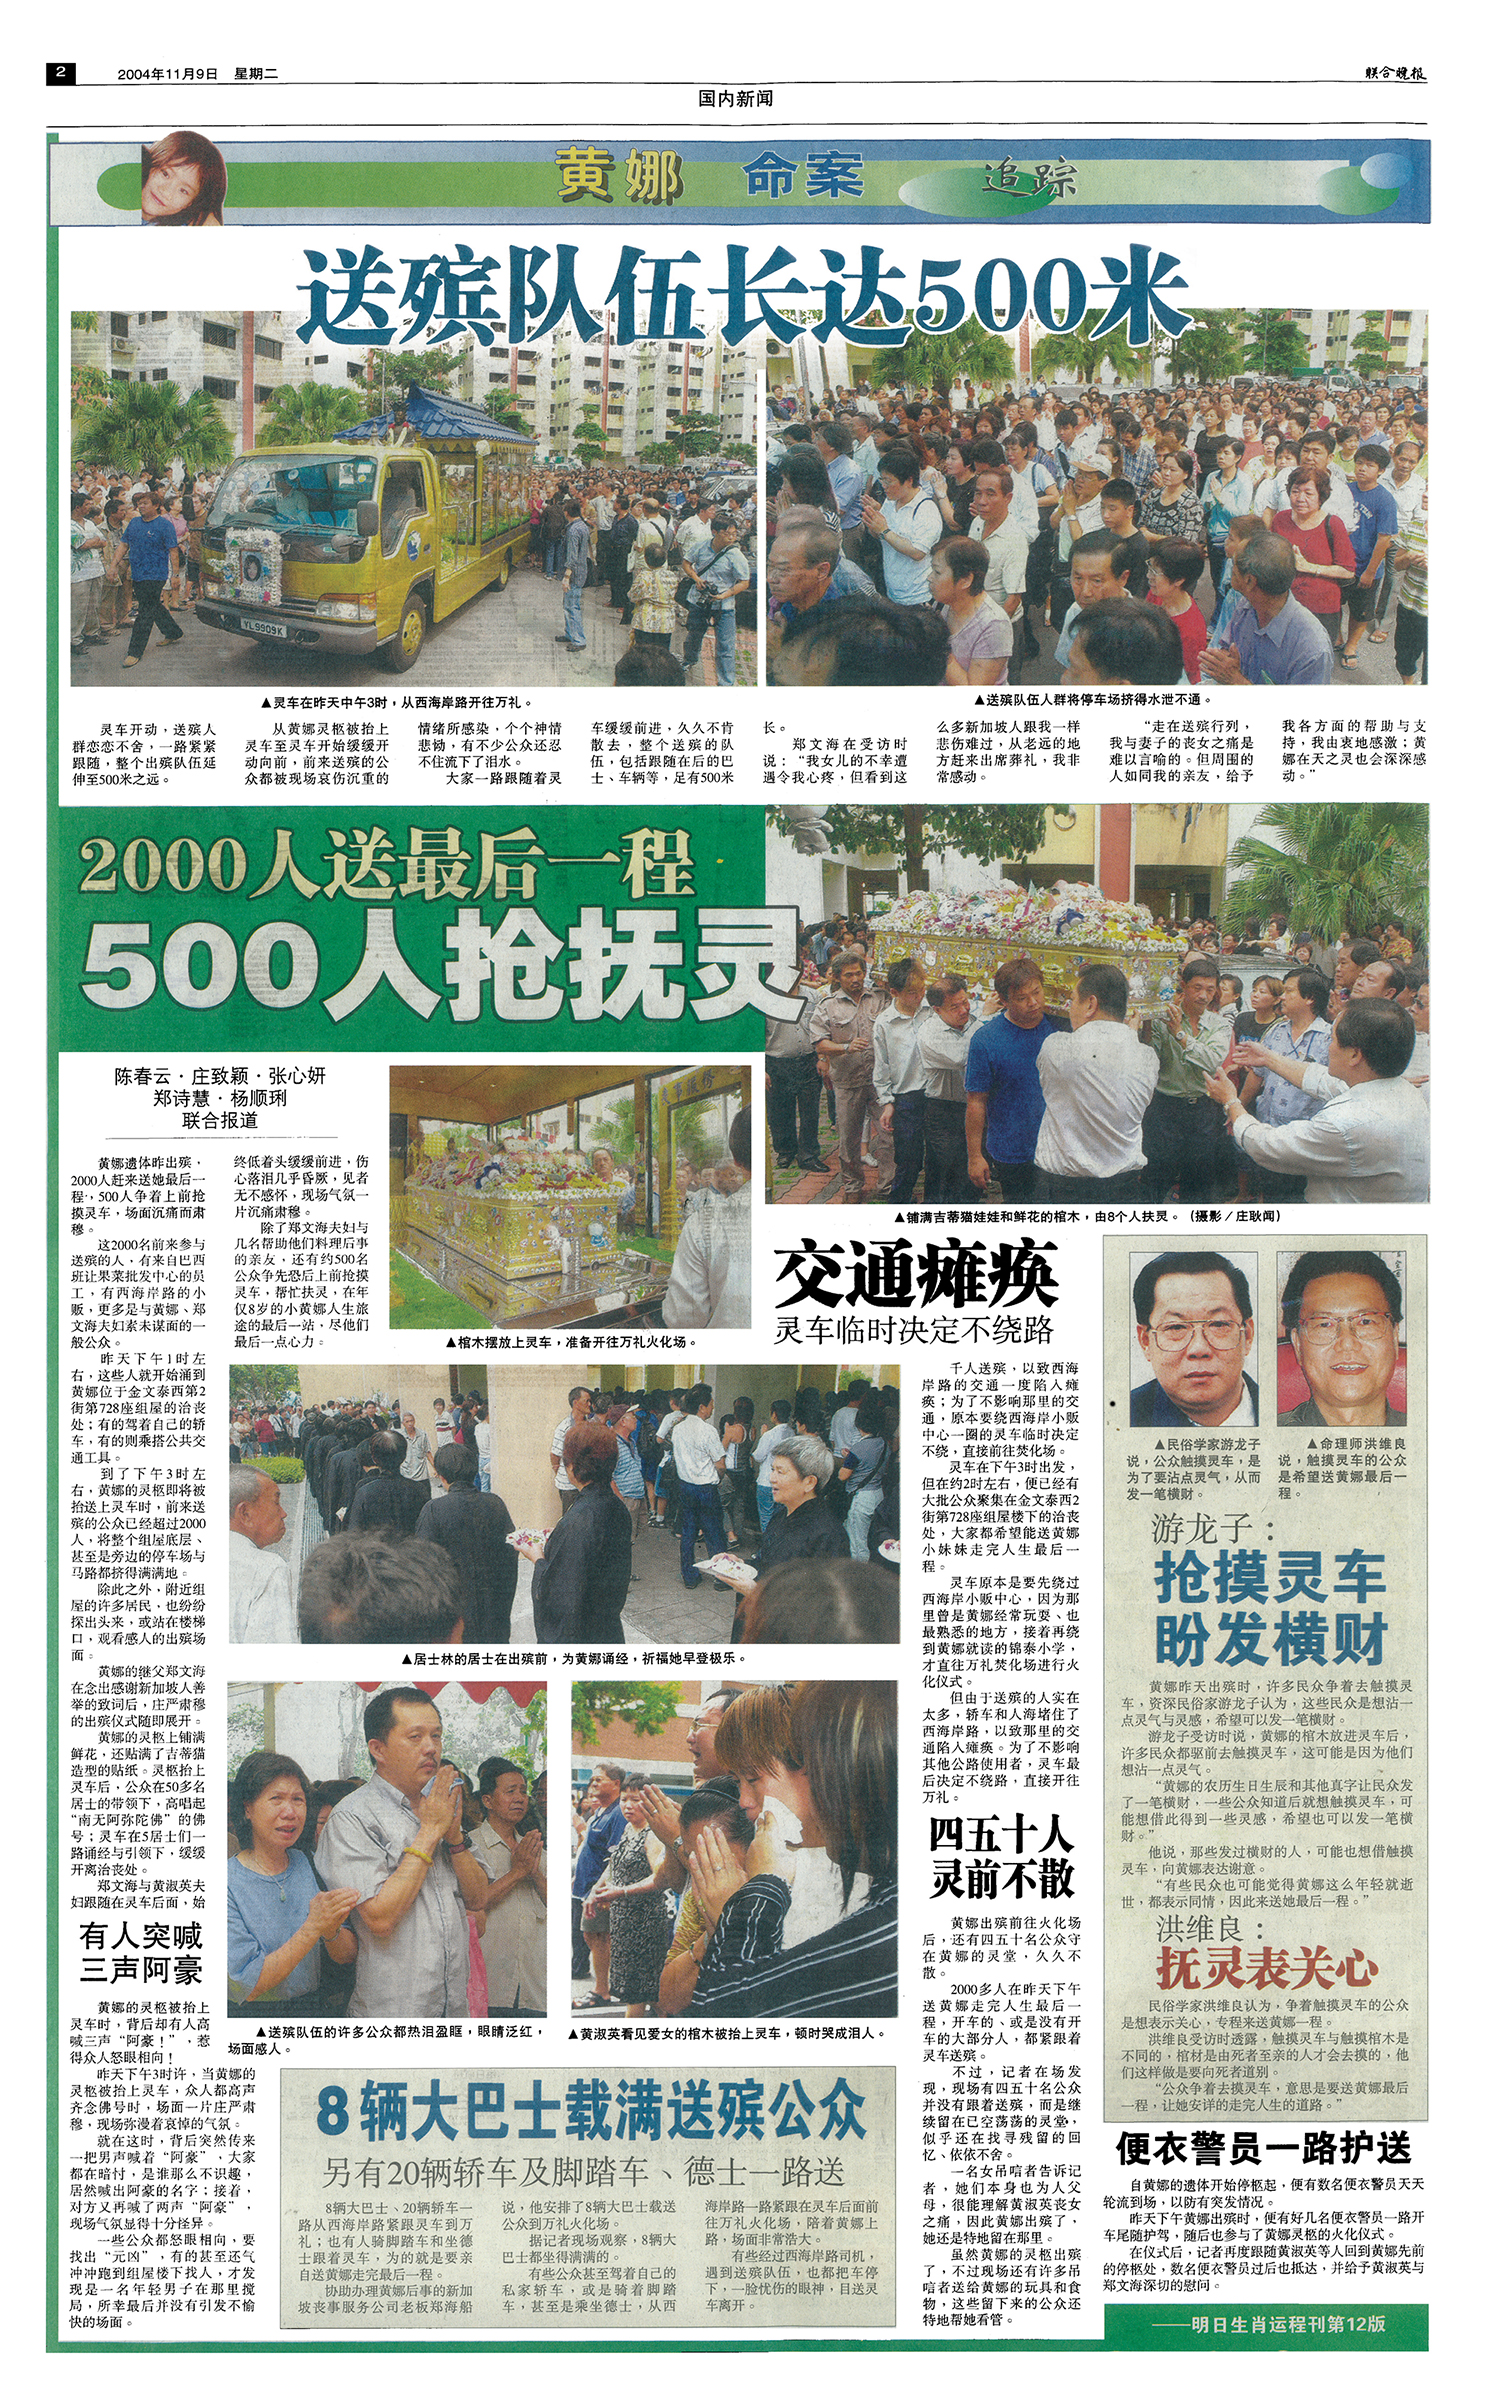 Article - 20041109